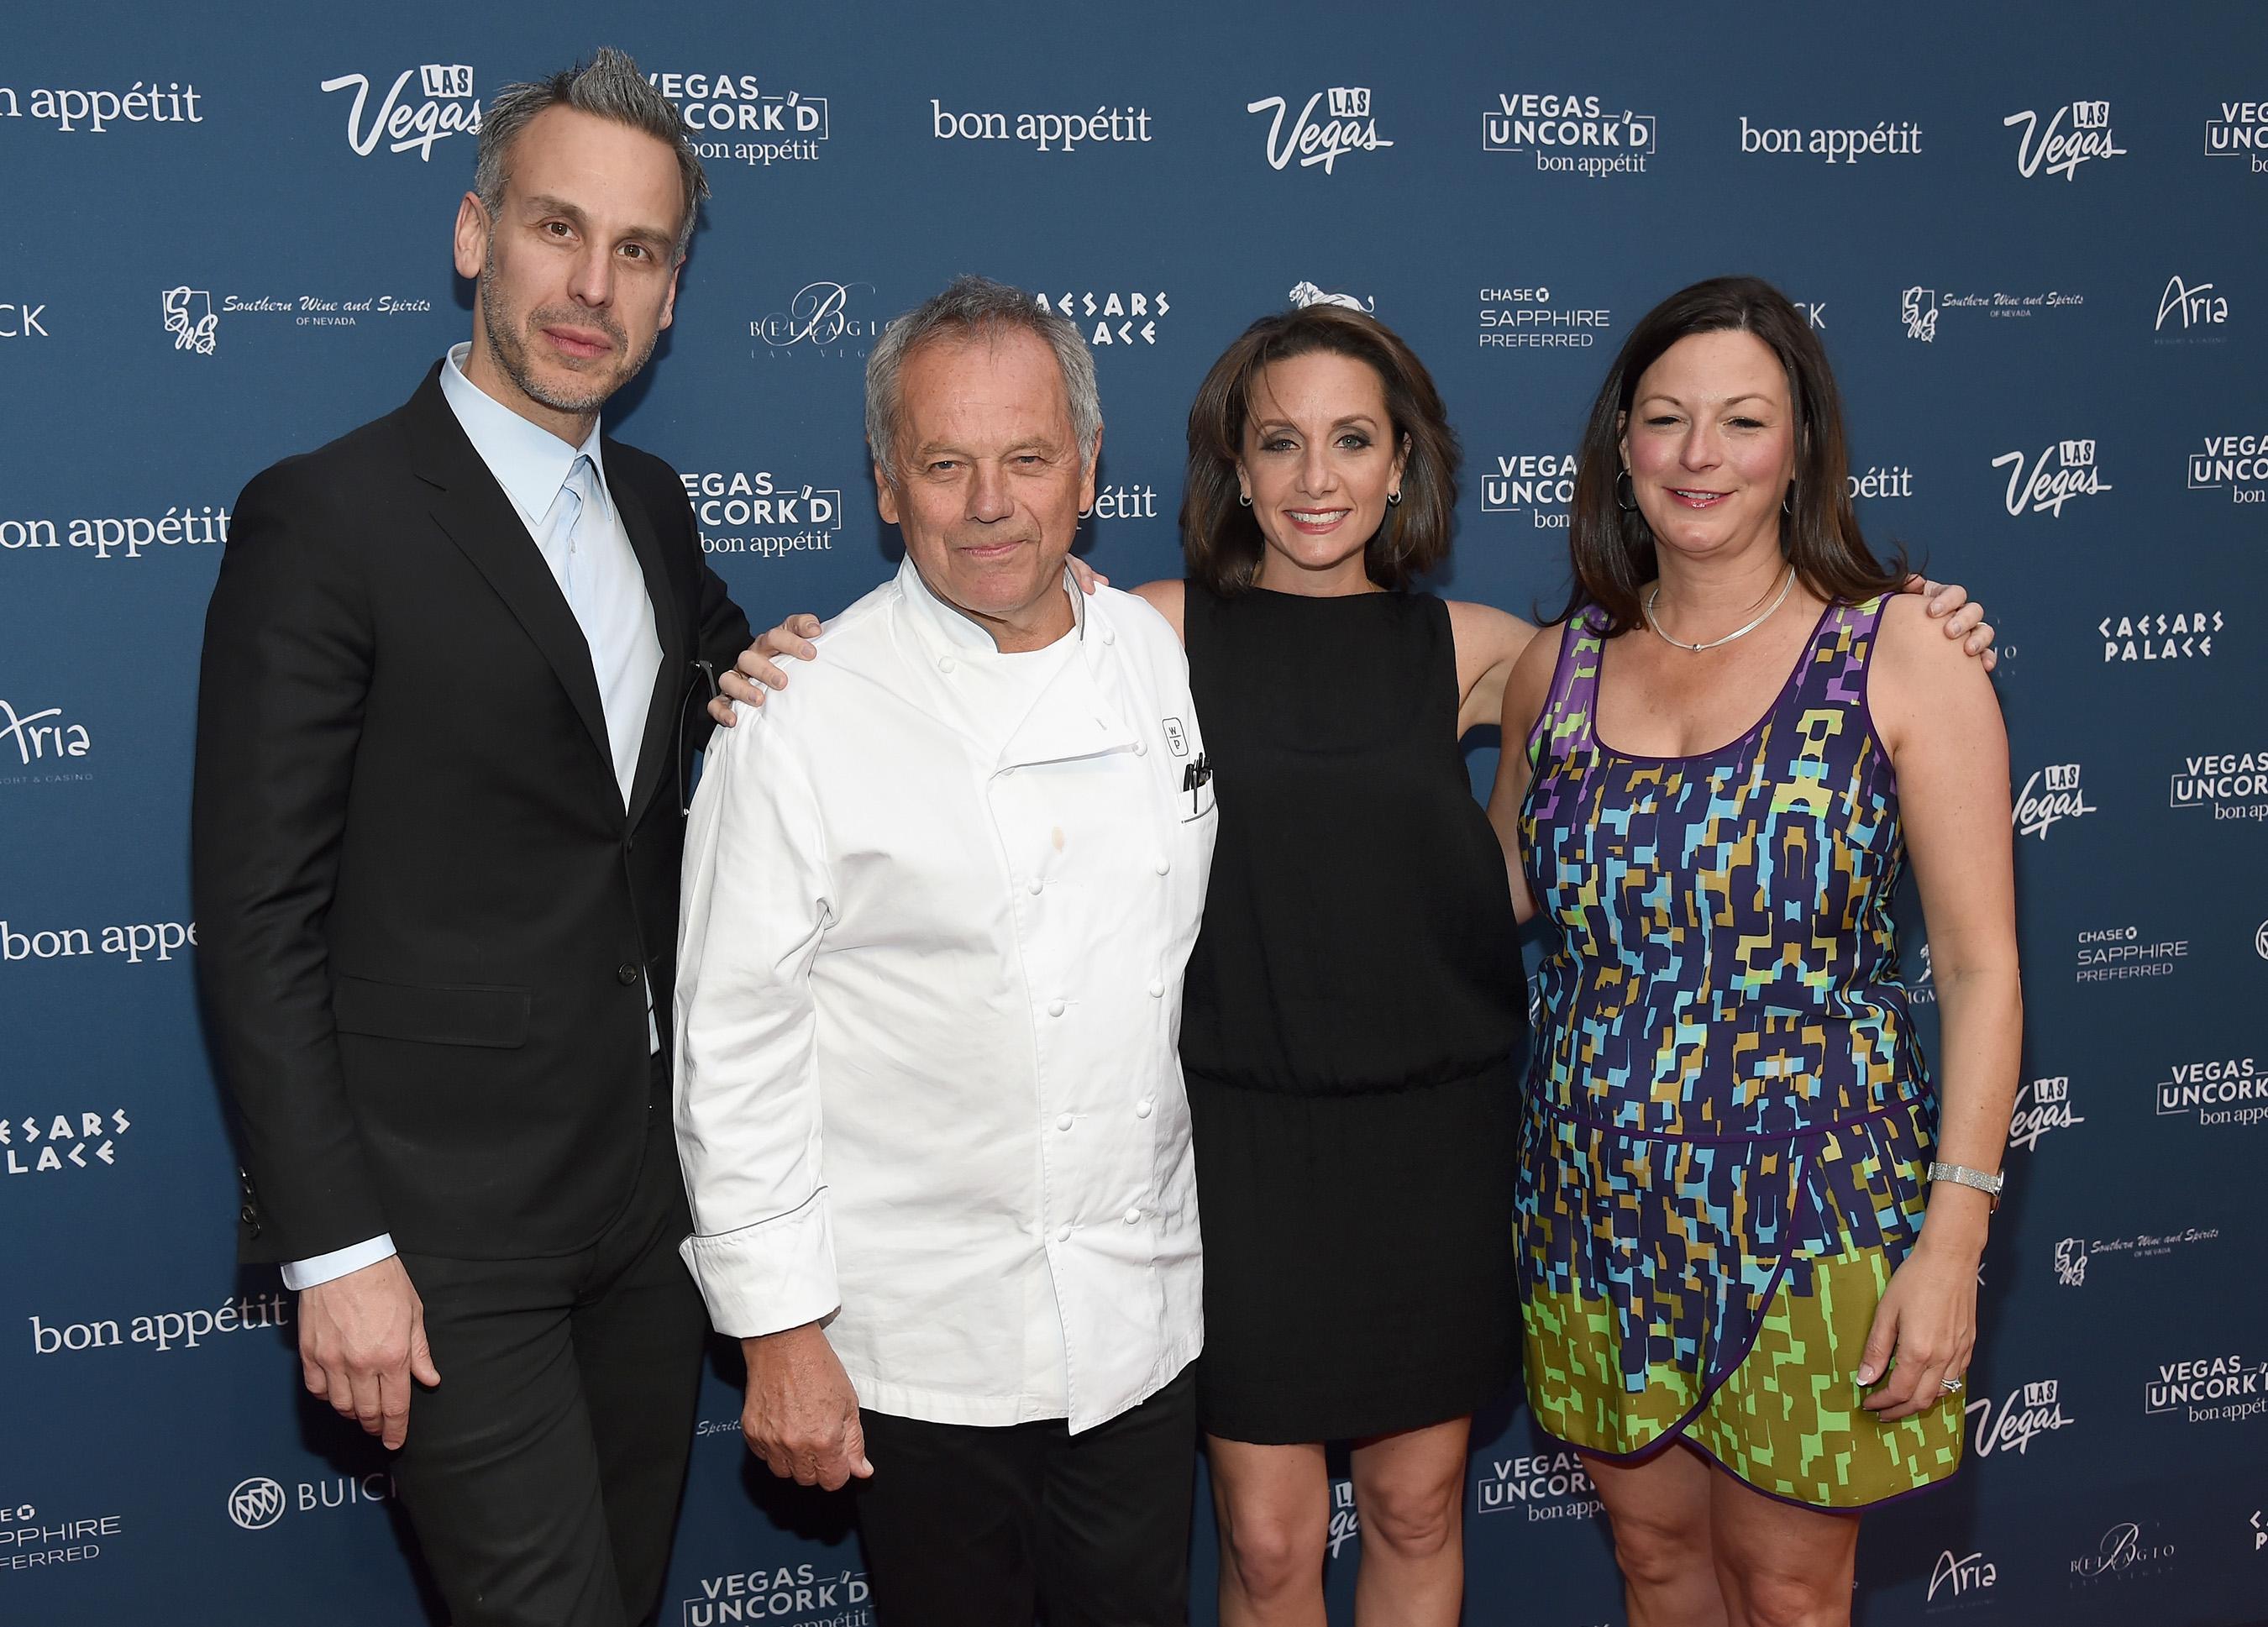 Tickets On Sale For 10th Annual Vegas Uncork'd By Bon Appétit, April 28 - May 1